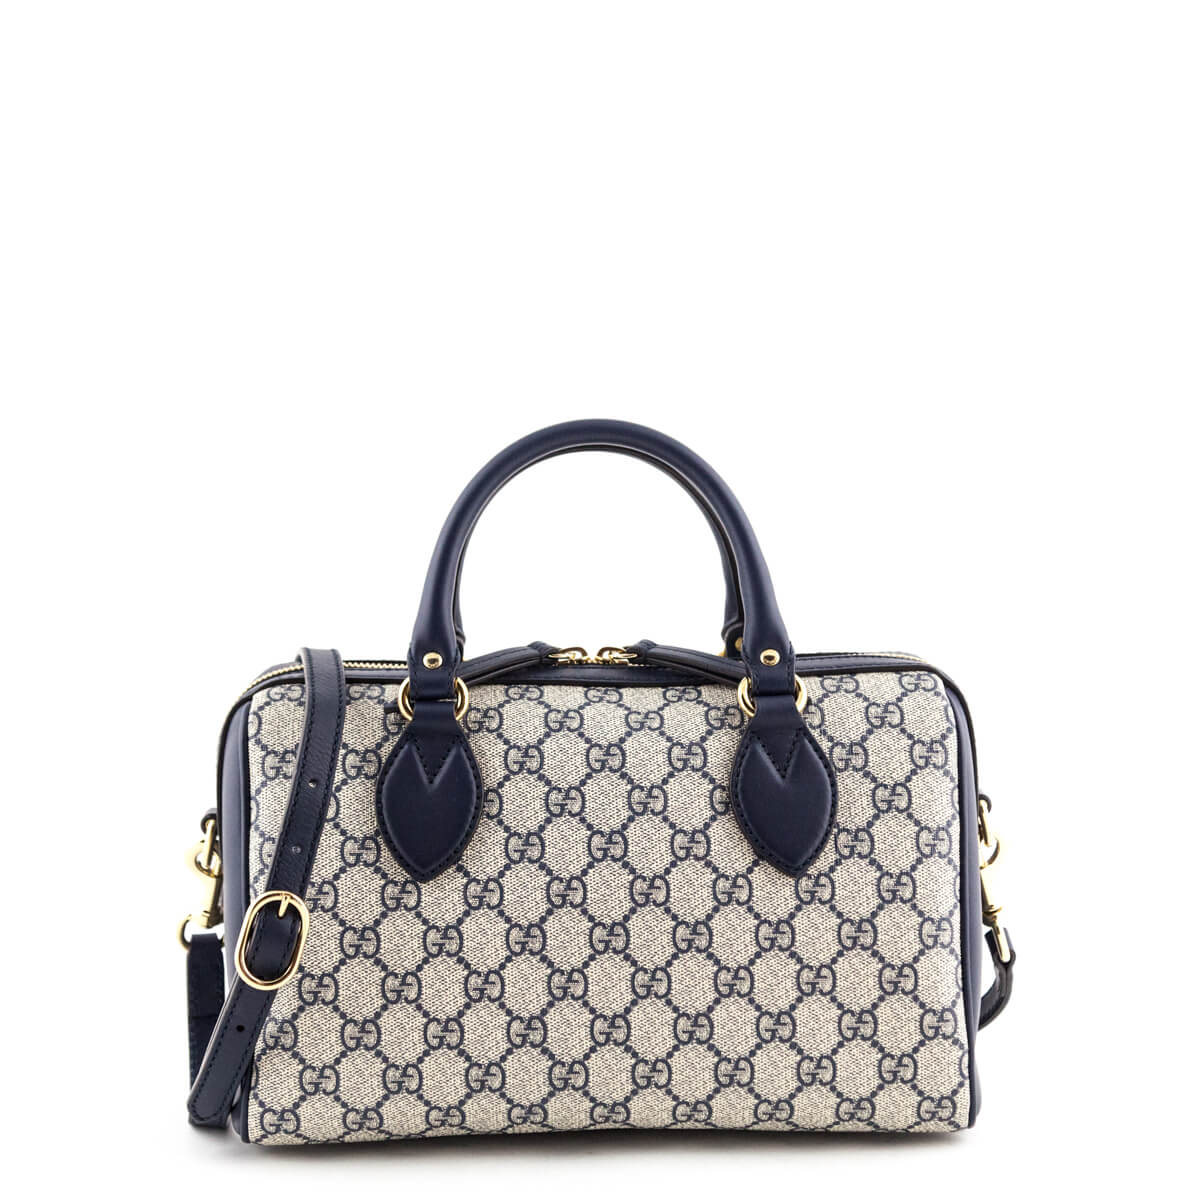 dfef4fb5bc1 Gucci Navy GG Supreme Small Top Handle Bag - LOVE that BAG - Preowned  Authentic Designer ...